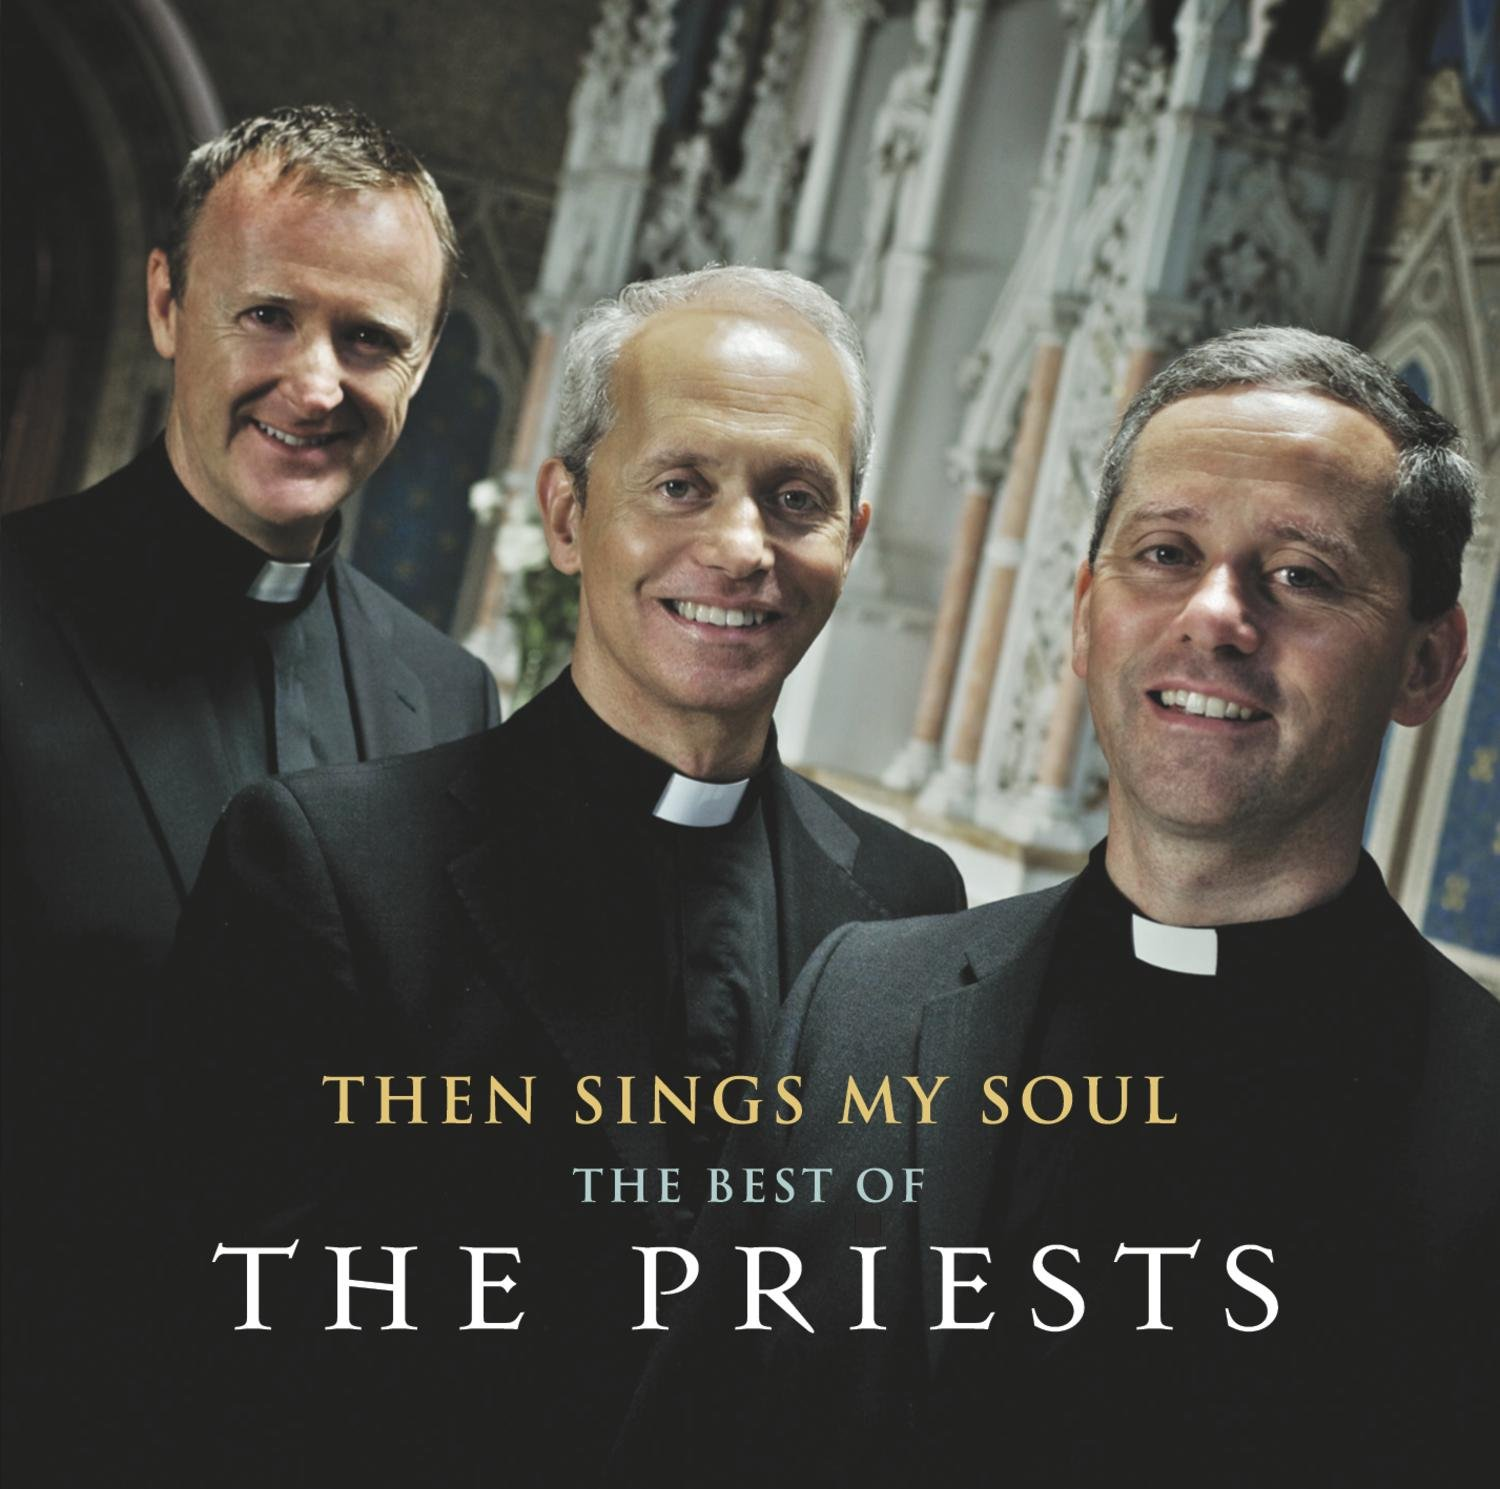 the priests harmony download